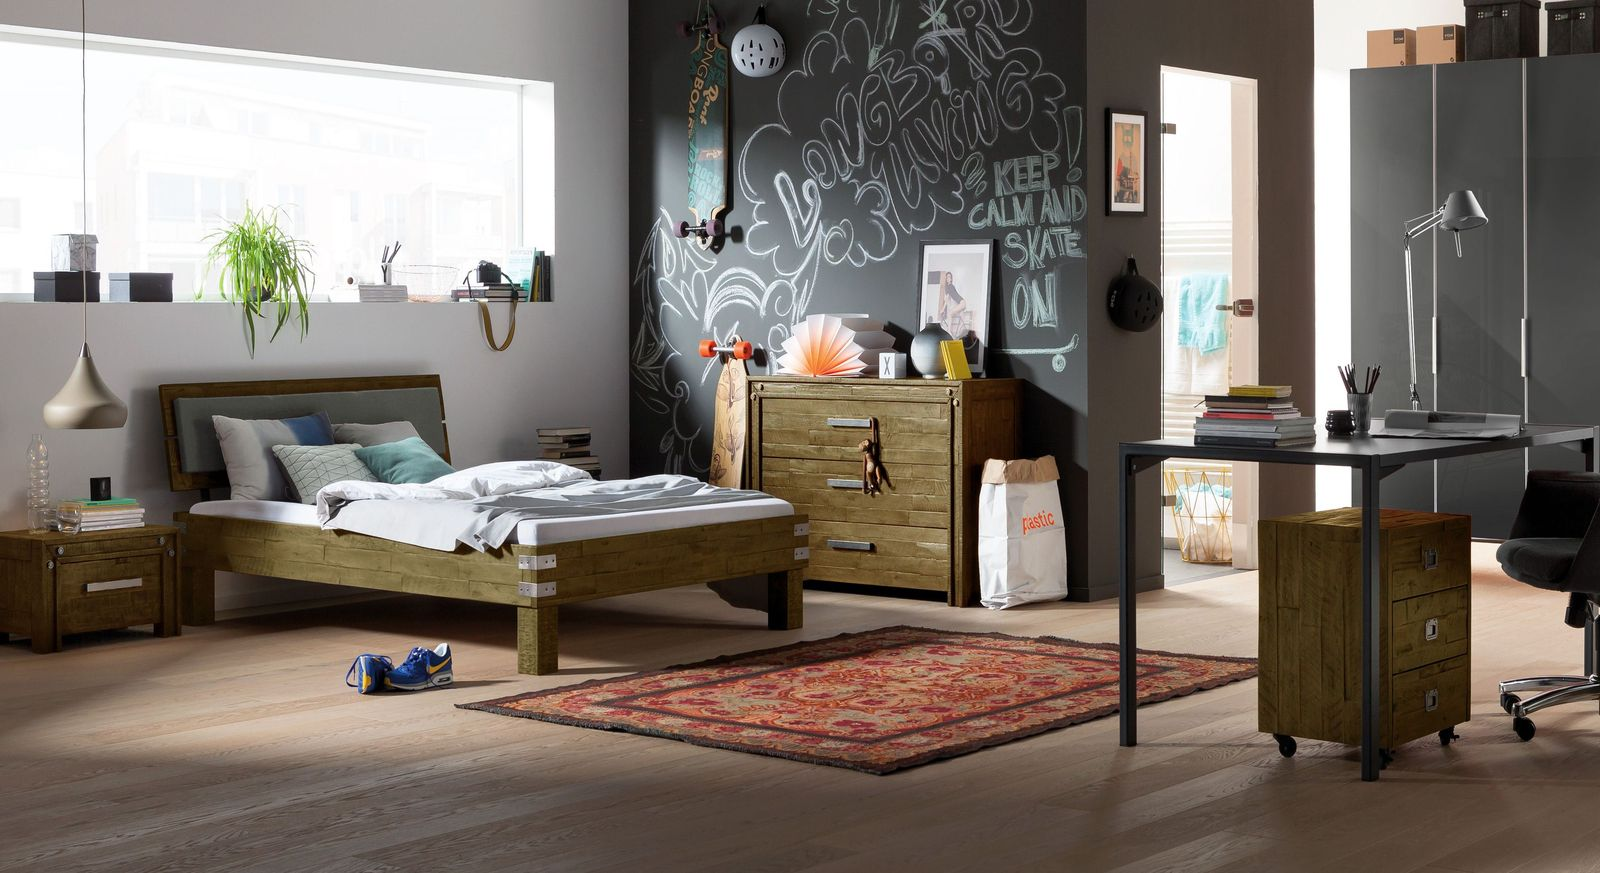 echtholz jugendzimmer im angesagten industrial look felipe. Black Bedroom Furniture Sets. Home Design Ideas